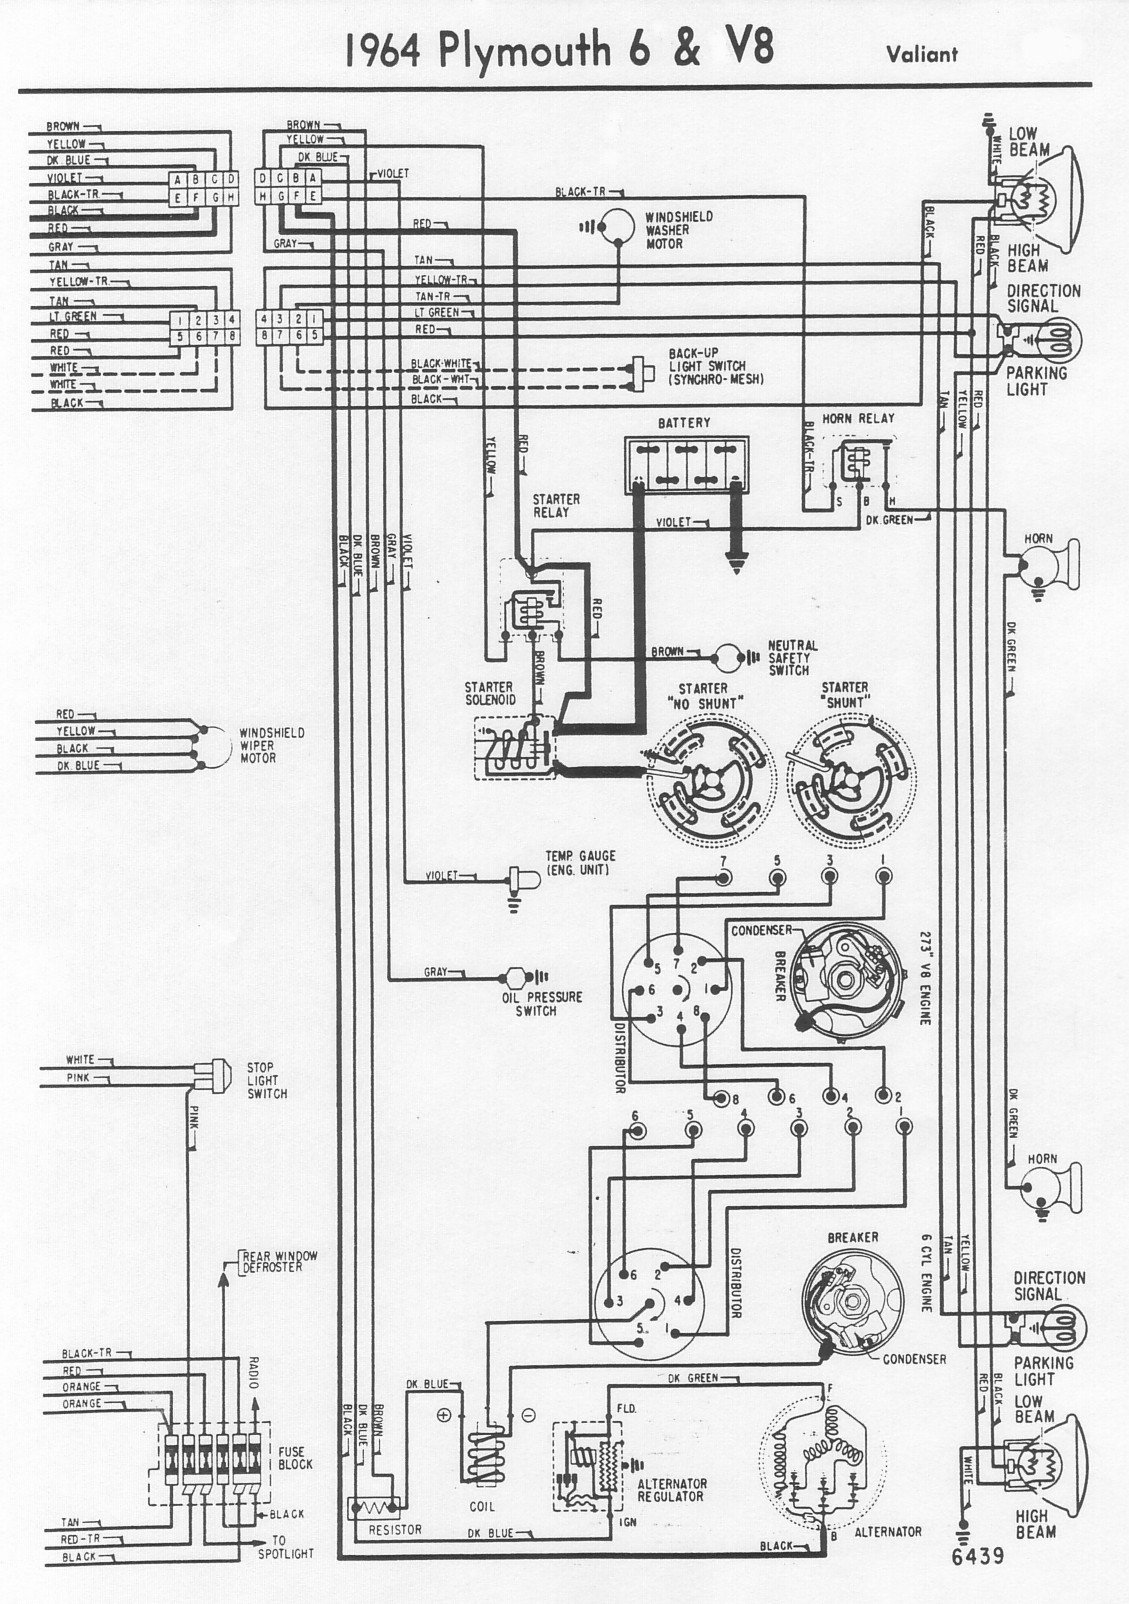 hight resolution of 1972 plymouth barracuda wiring diagram simple wiring diagram 1970 chevelle ss dash wiring diagram 68 valiant